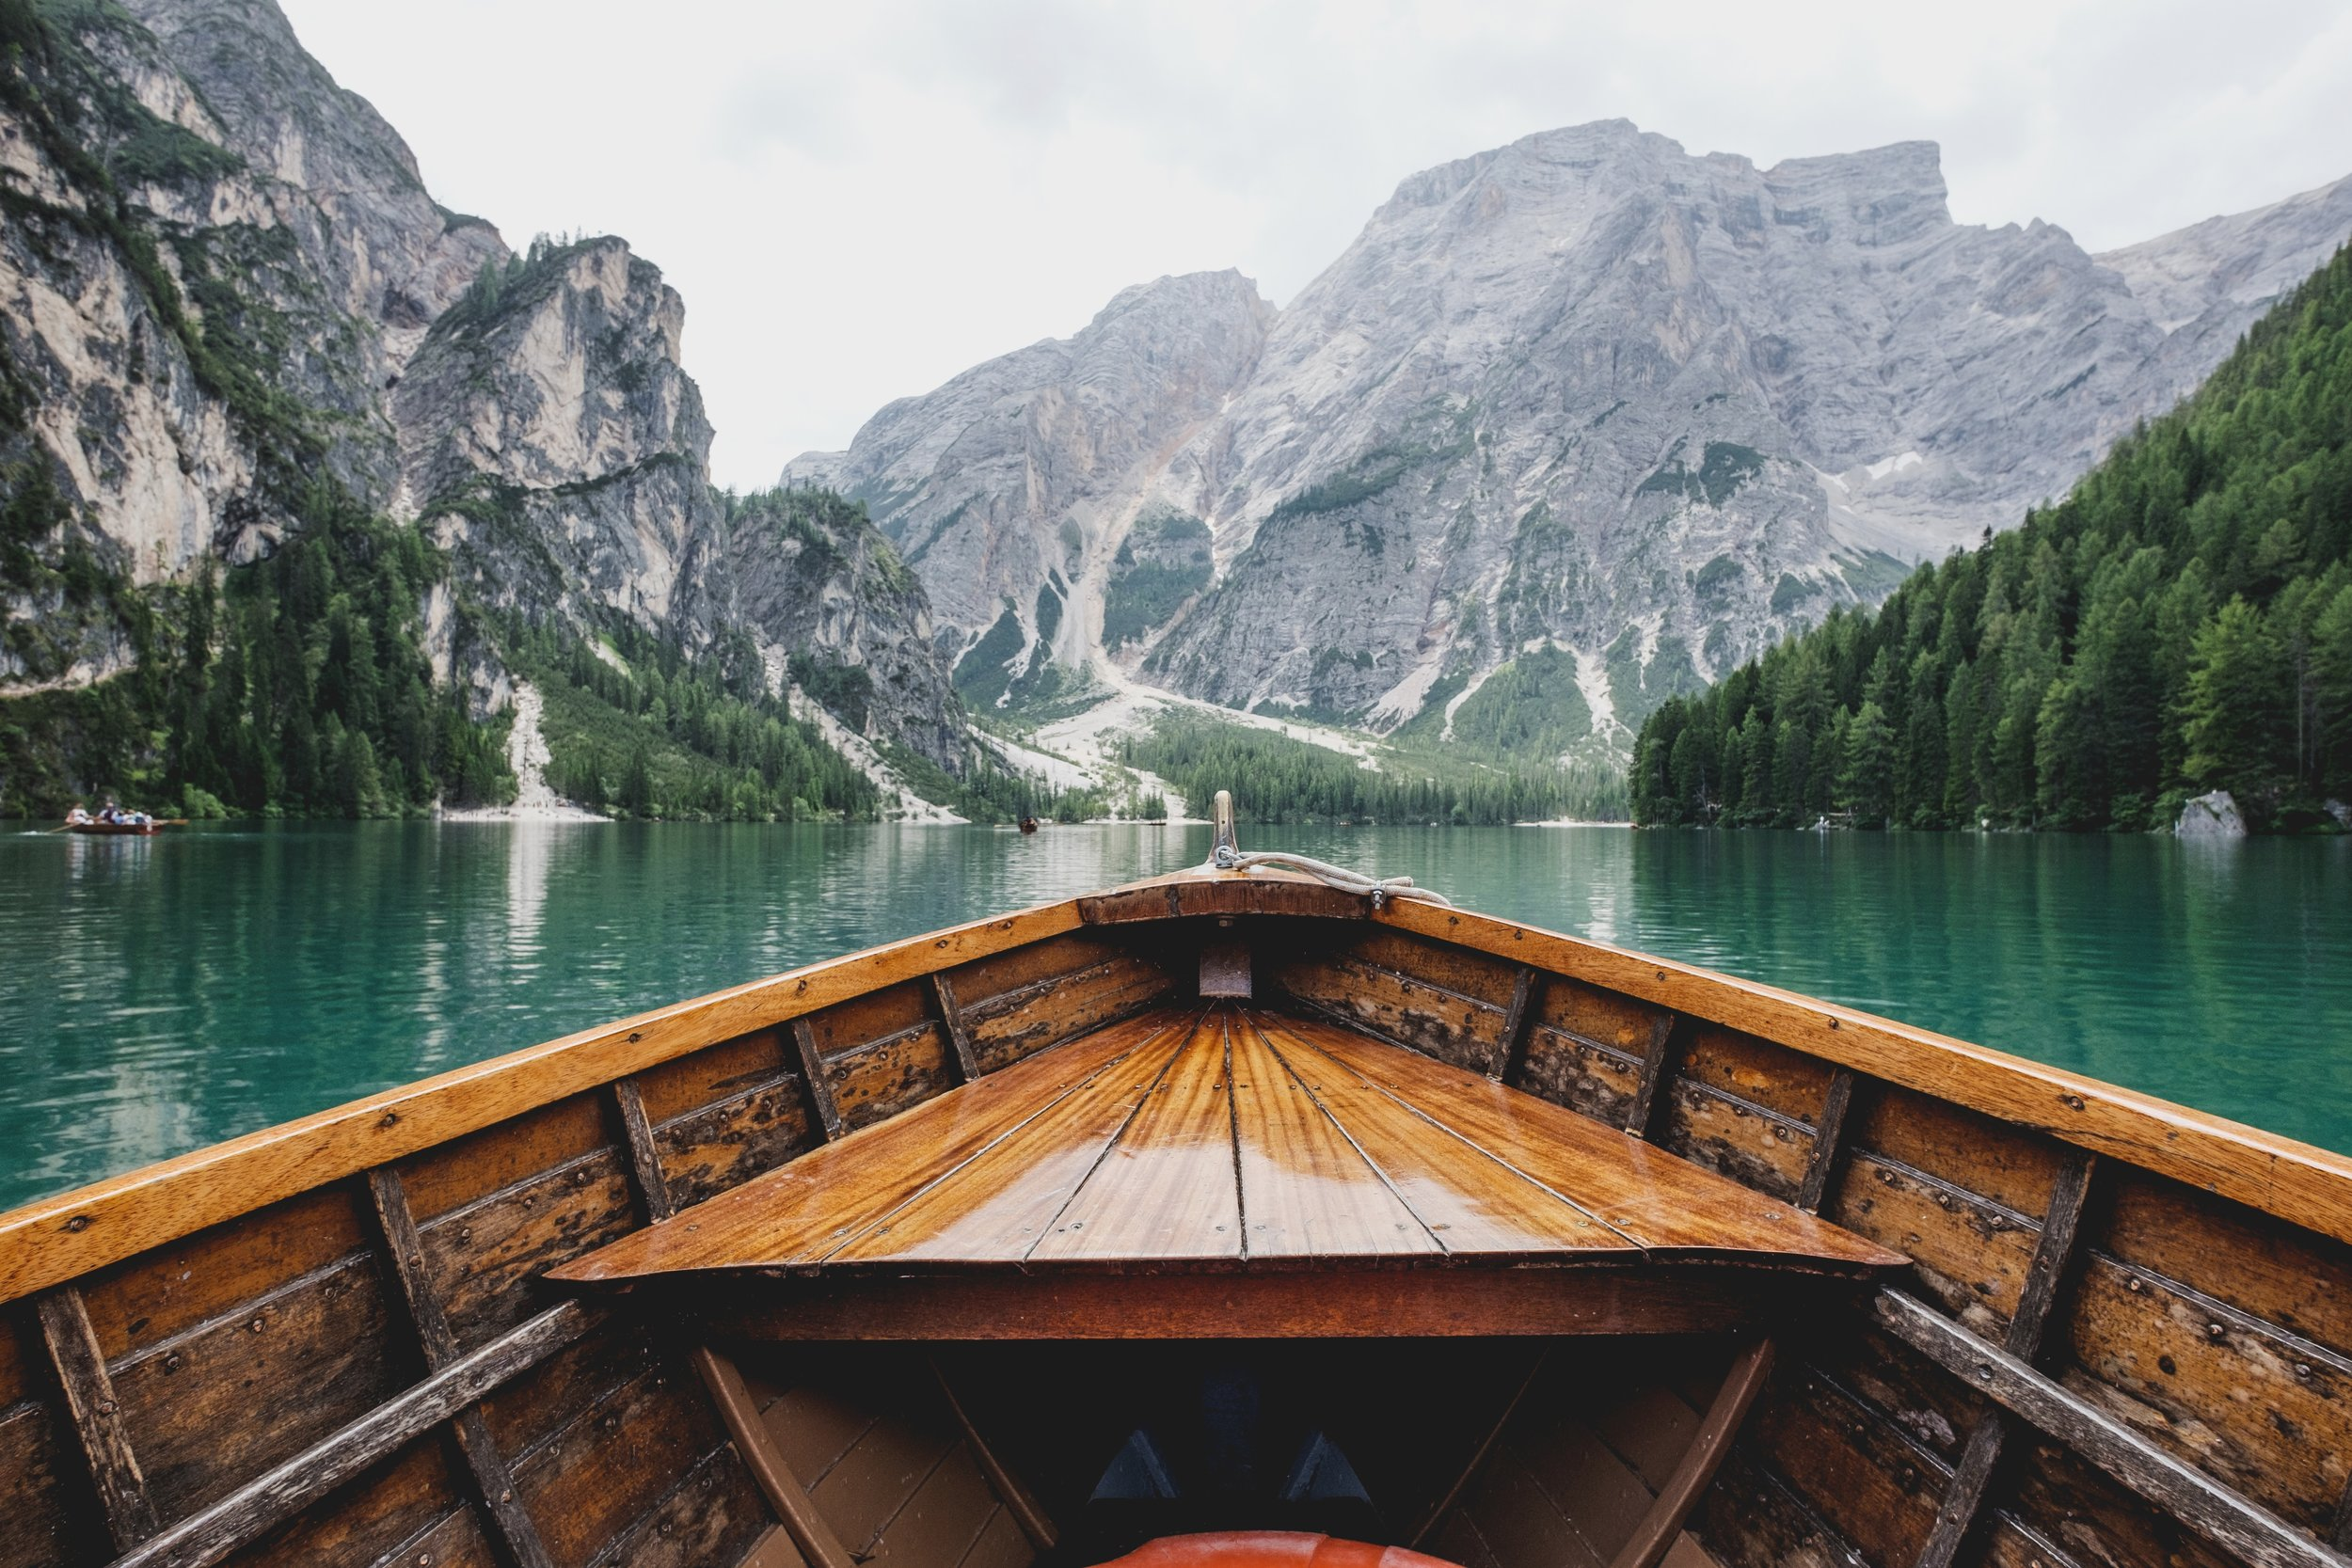 A Wild Quest To Uncover Success And Find Your Why - Photo by Luca Bravoon Unsplash